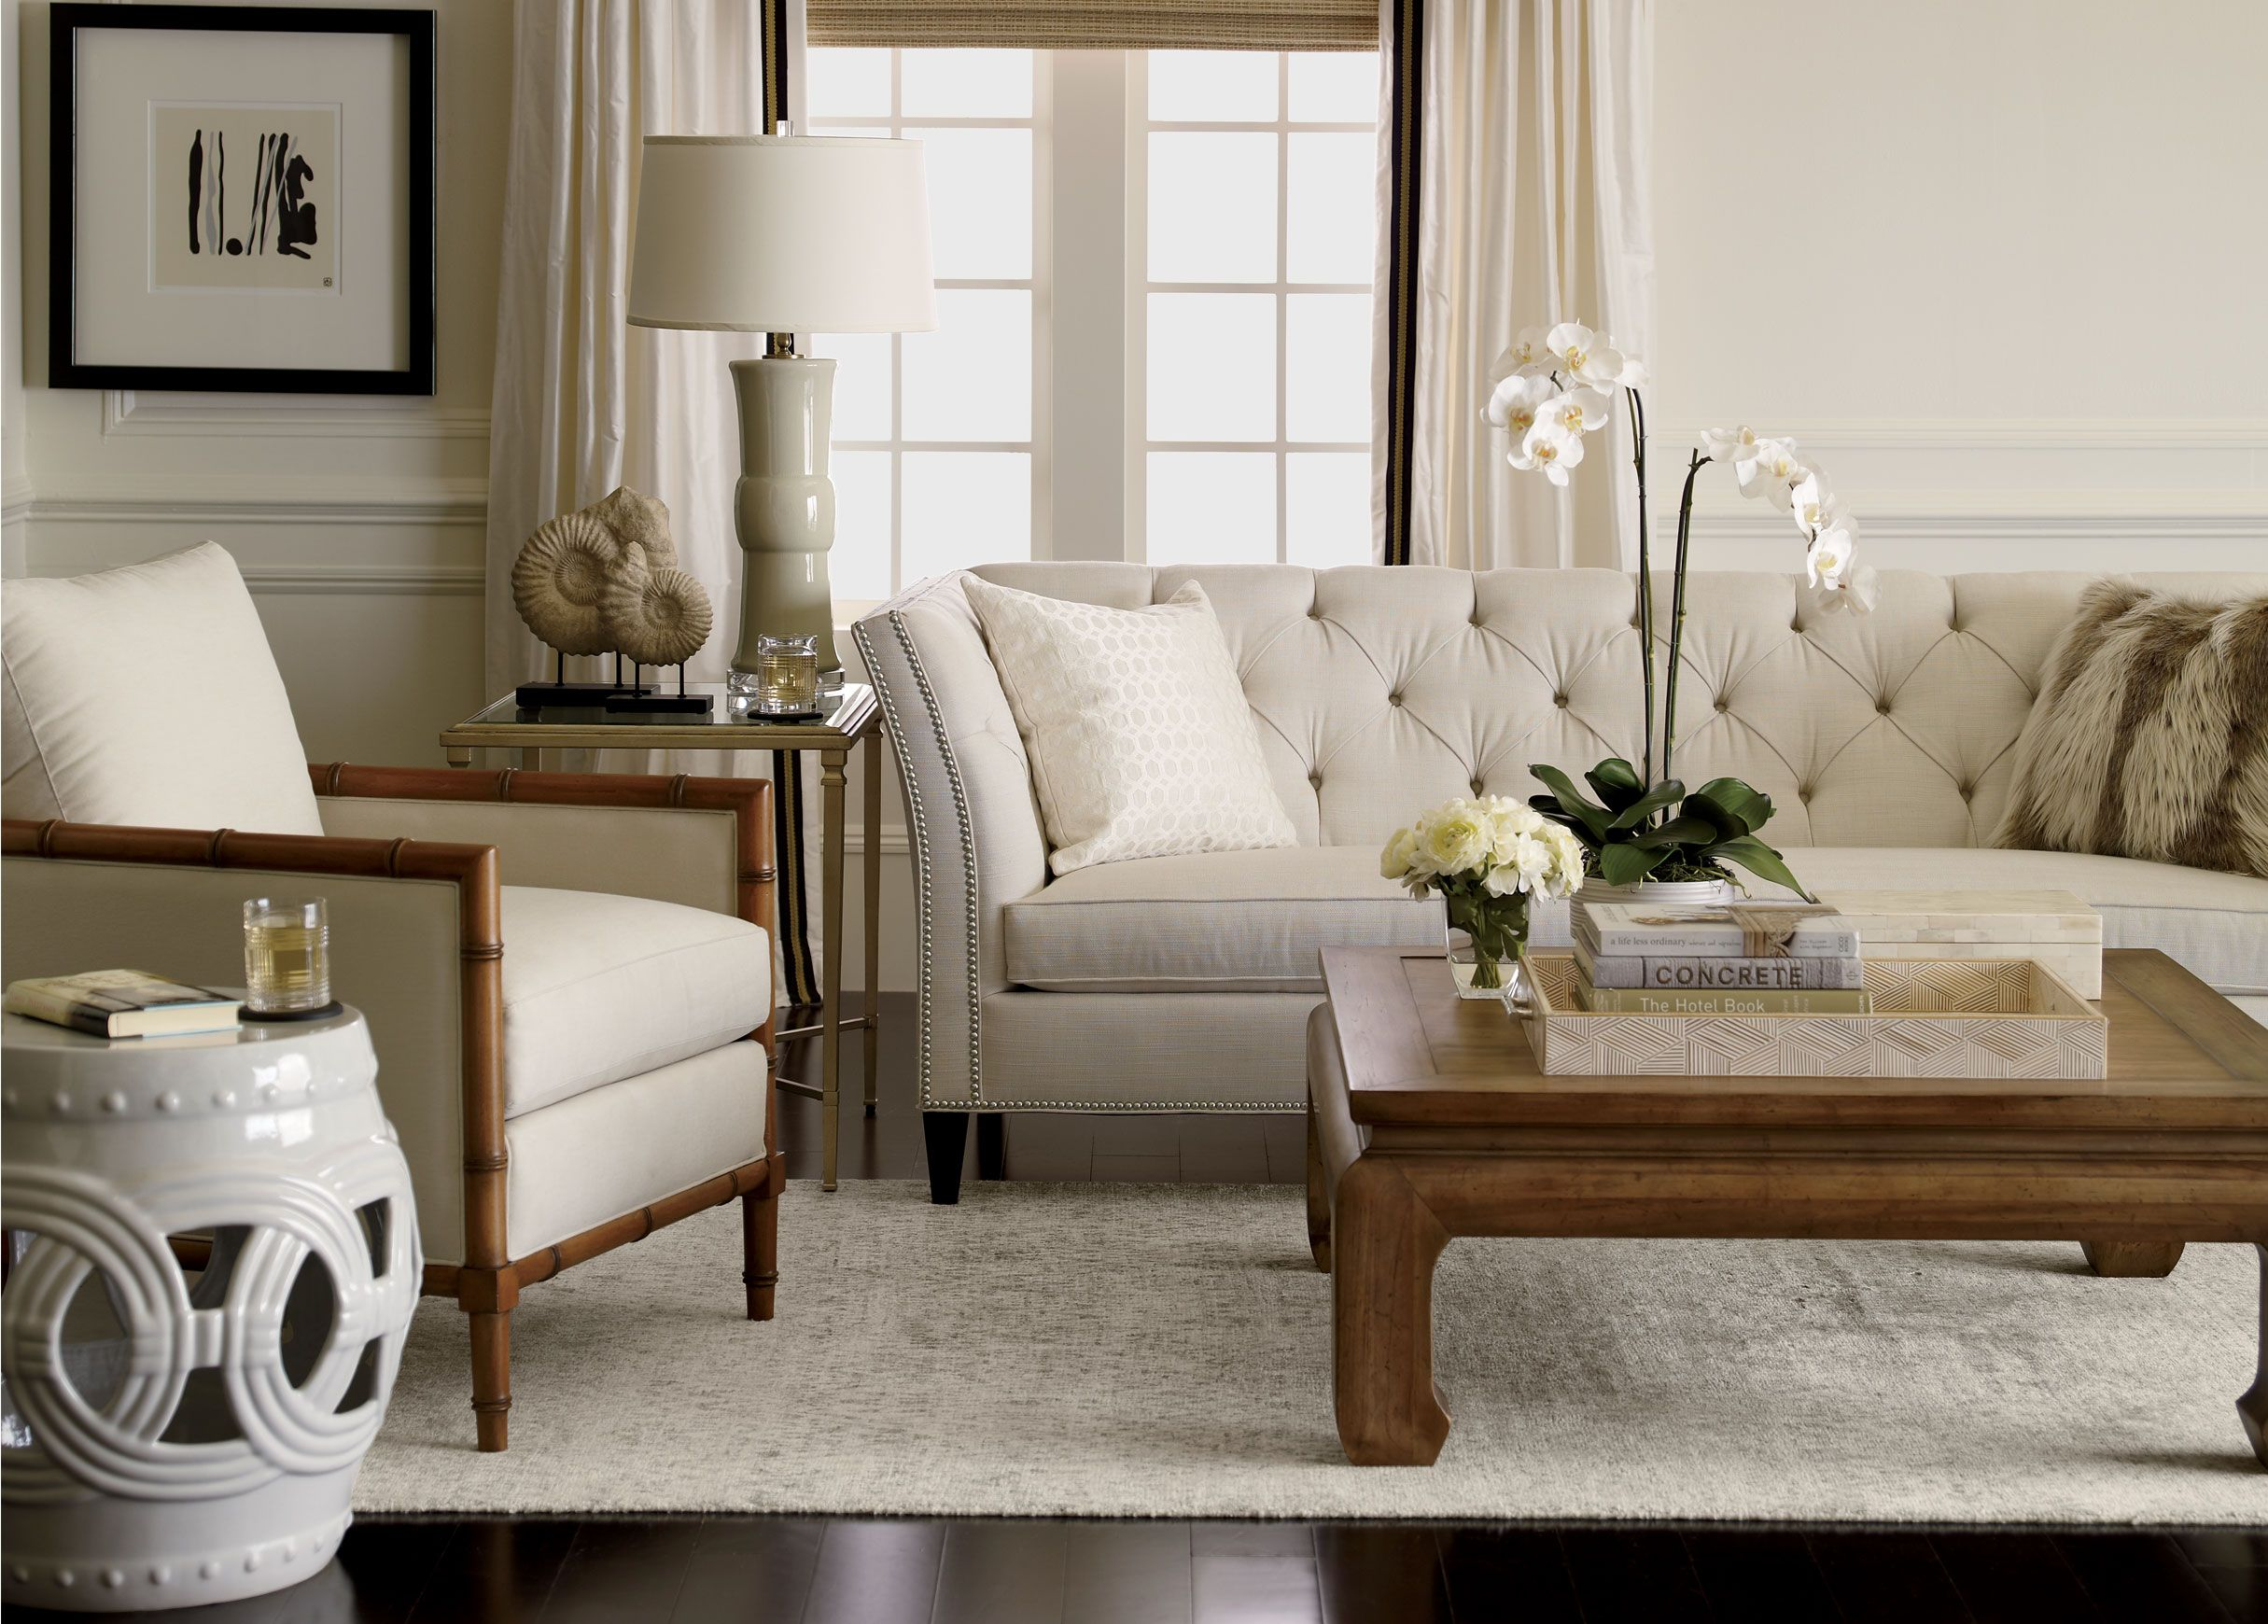 40 best ethan allen images on pinterest | ethan allen, hgtv dream